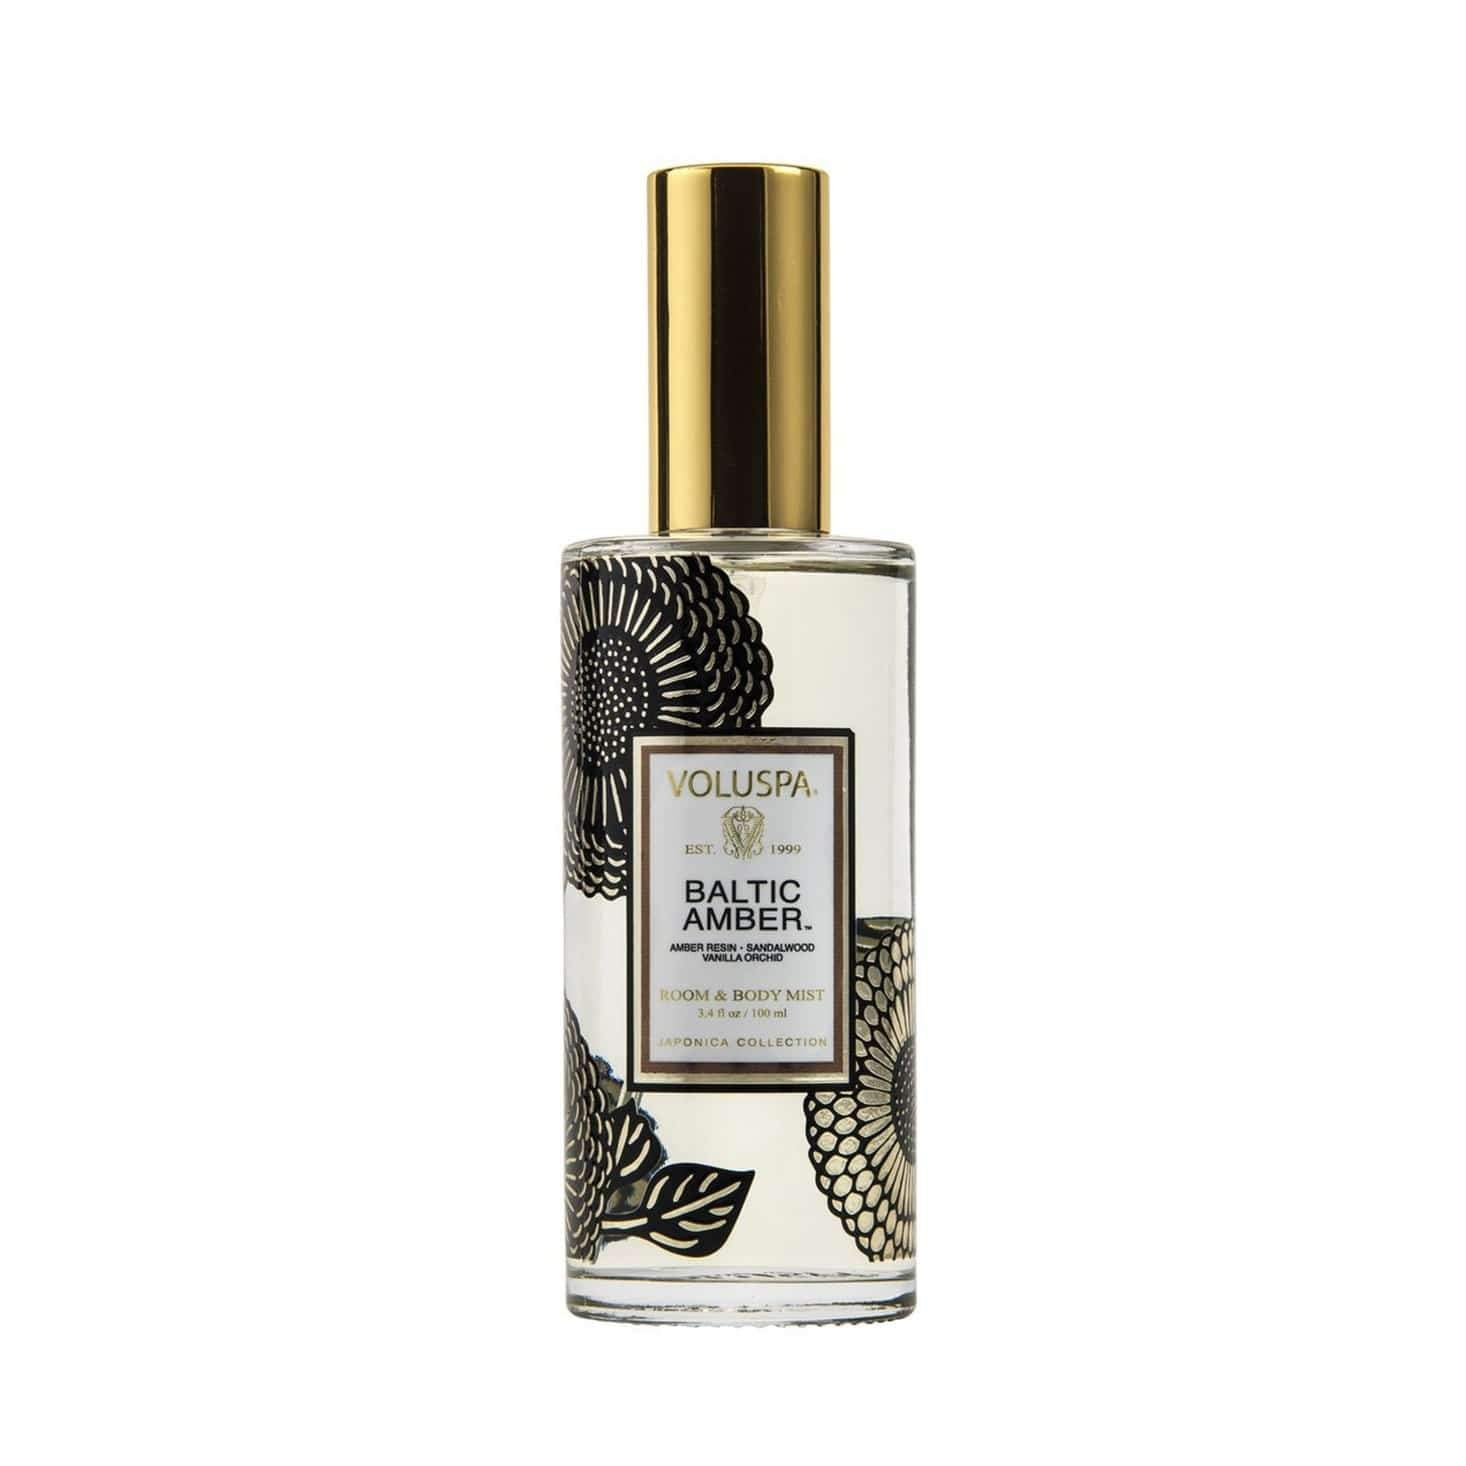 VOLUSPA Baltic Amber Room Mist